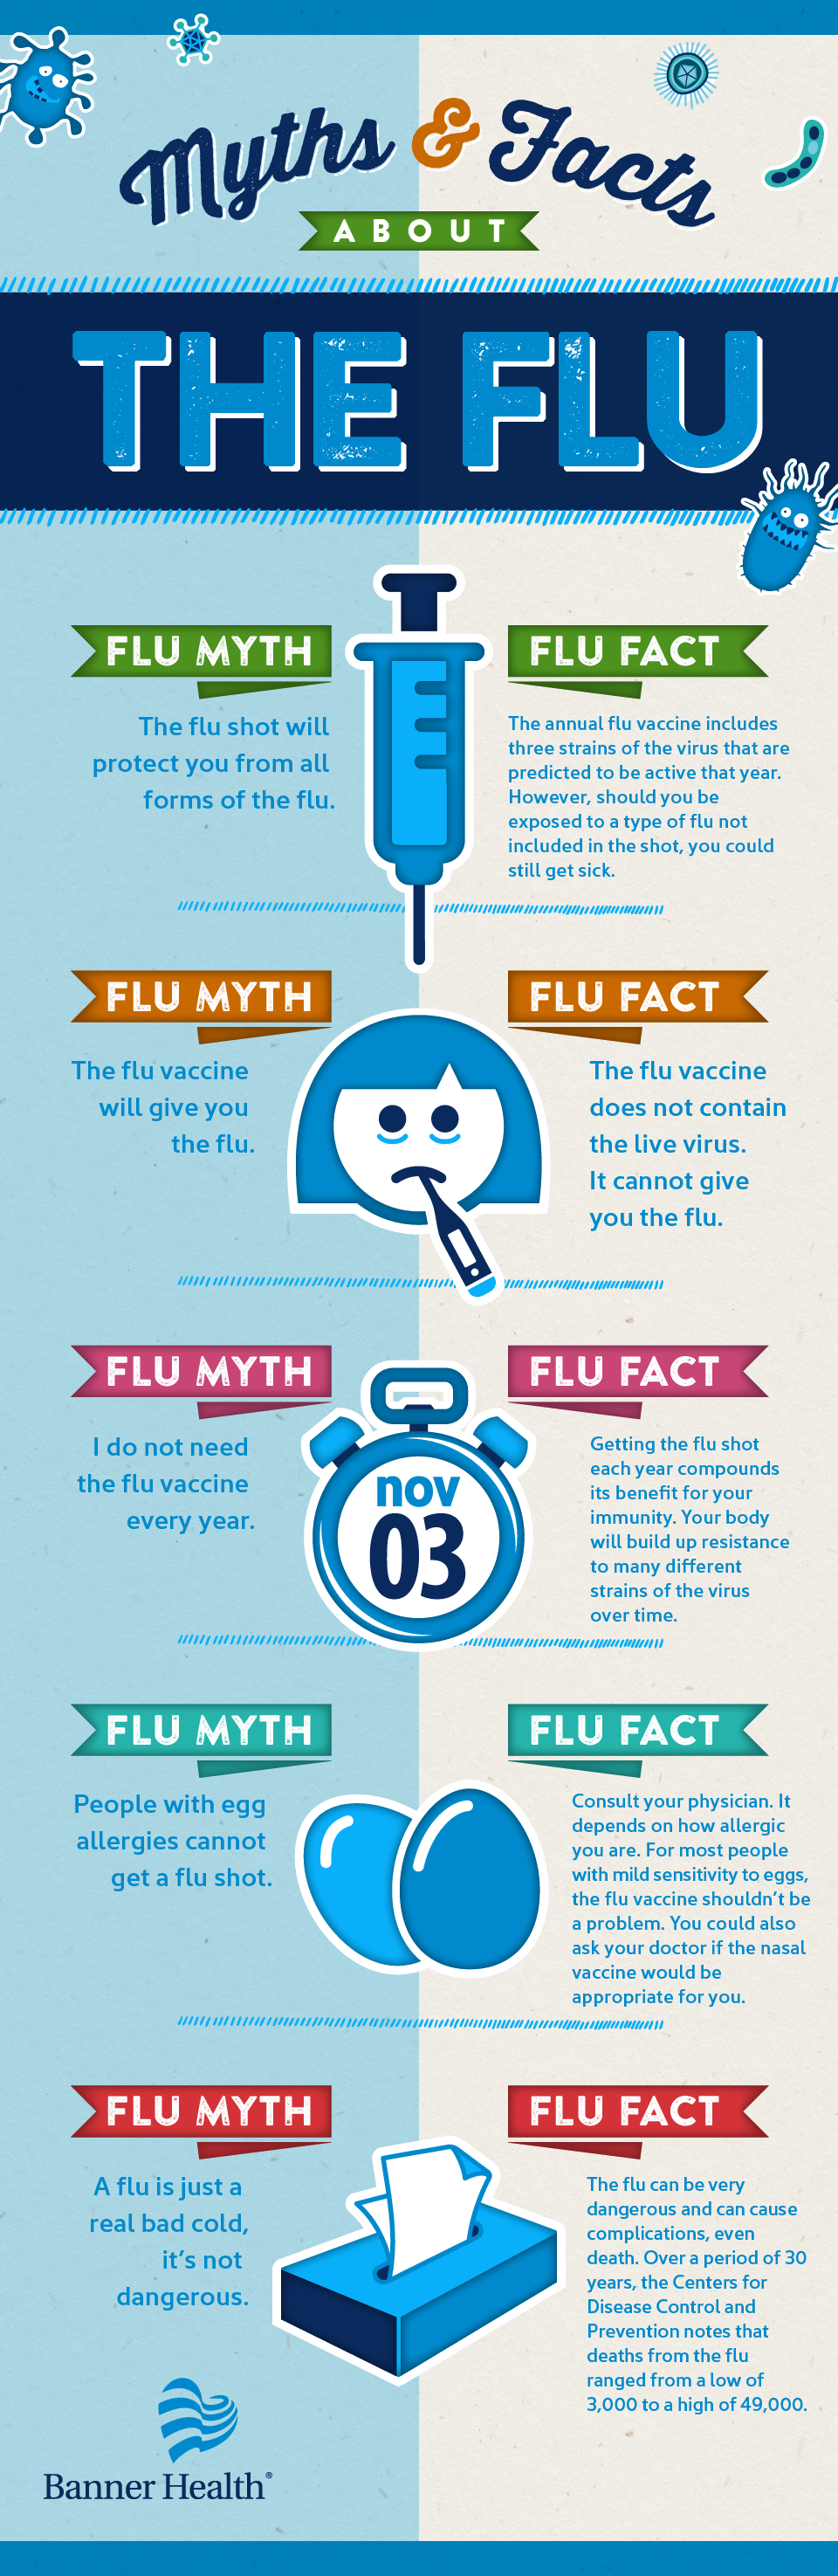 seizure diary template - flu season myths busted with facts an infographic